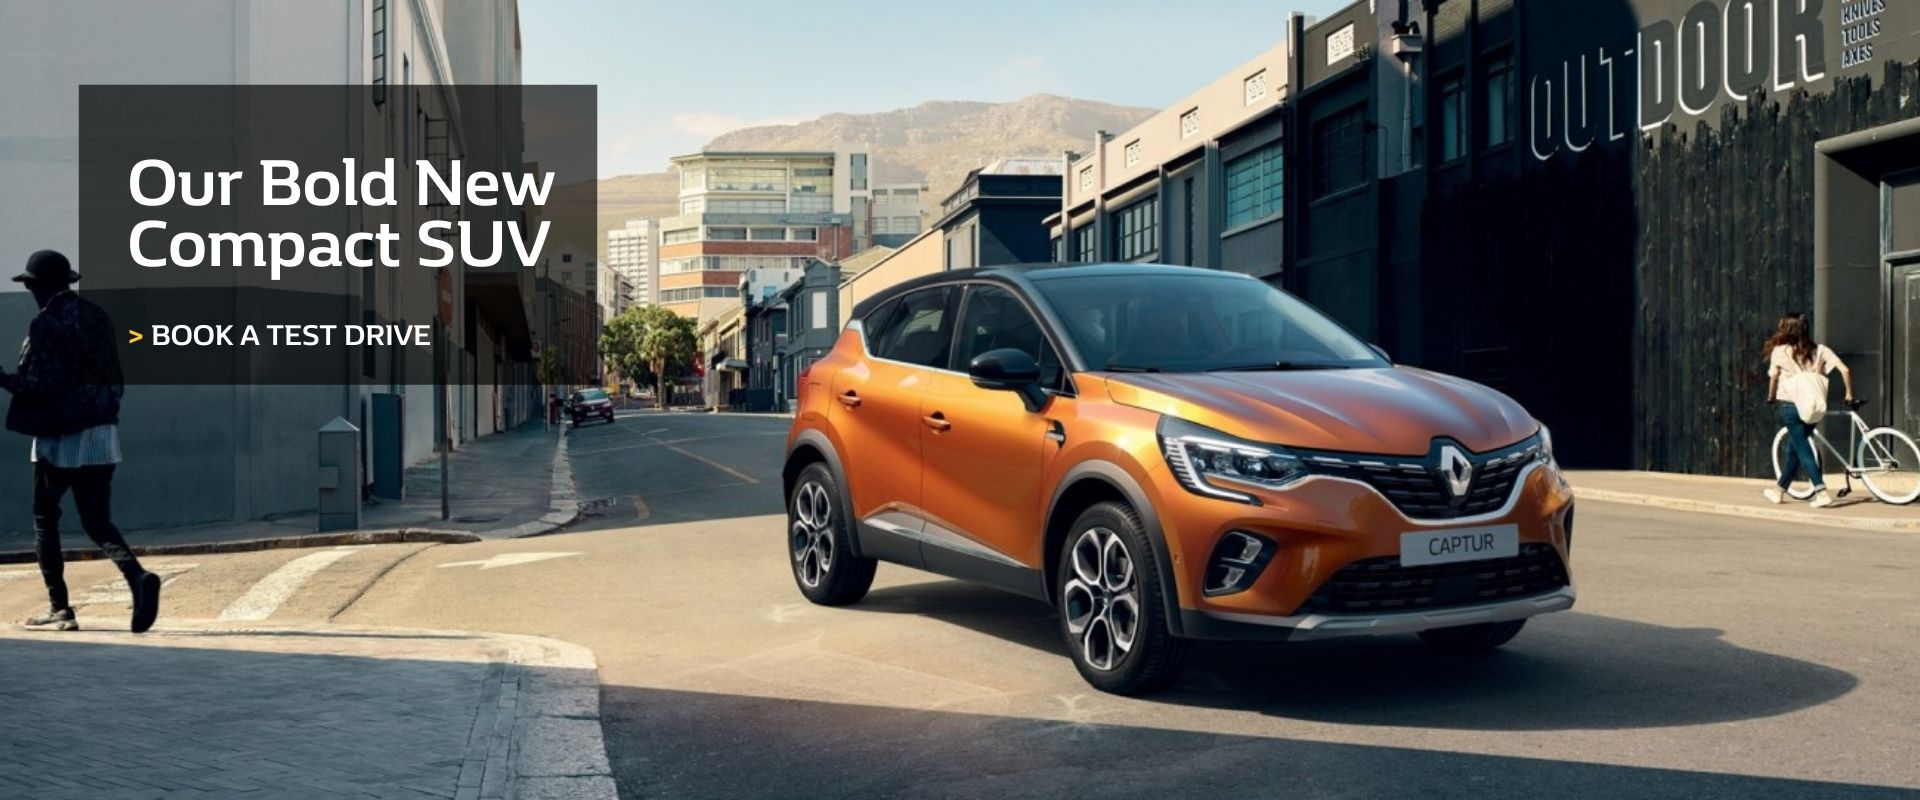 Renault Captur - Our Bold New Compact SUV - Book A Test Drive at DC Motors Renault